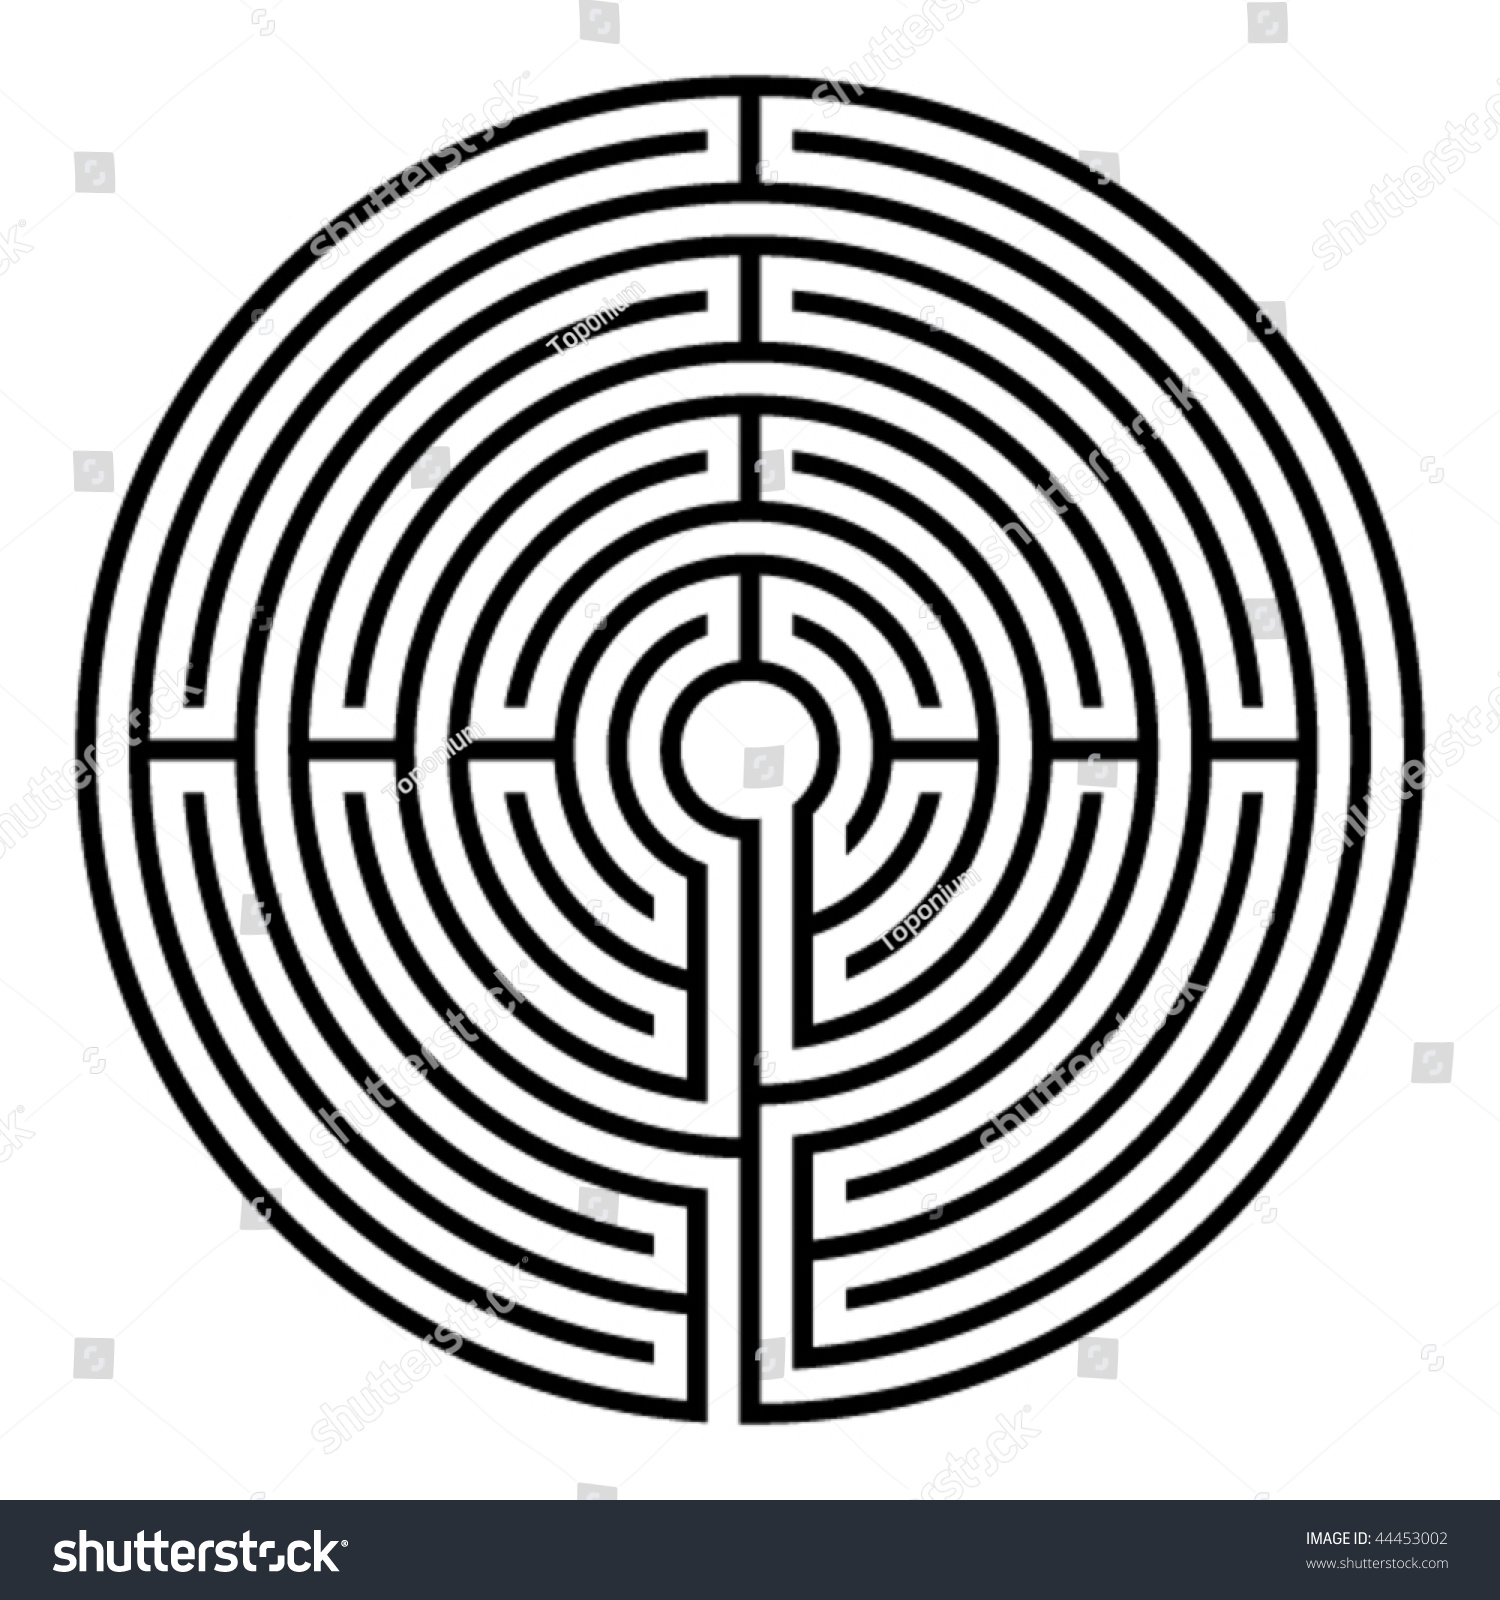 simple black circular labyrinth on white stock-vektorgrafik, Gartengerate ideen